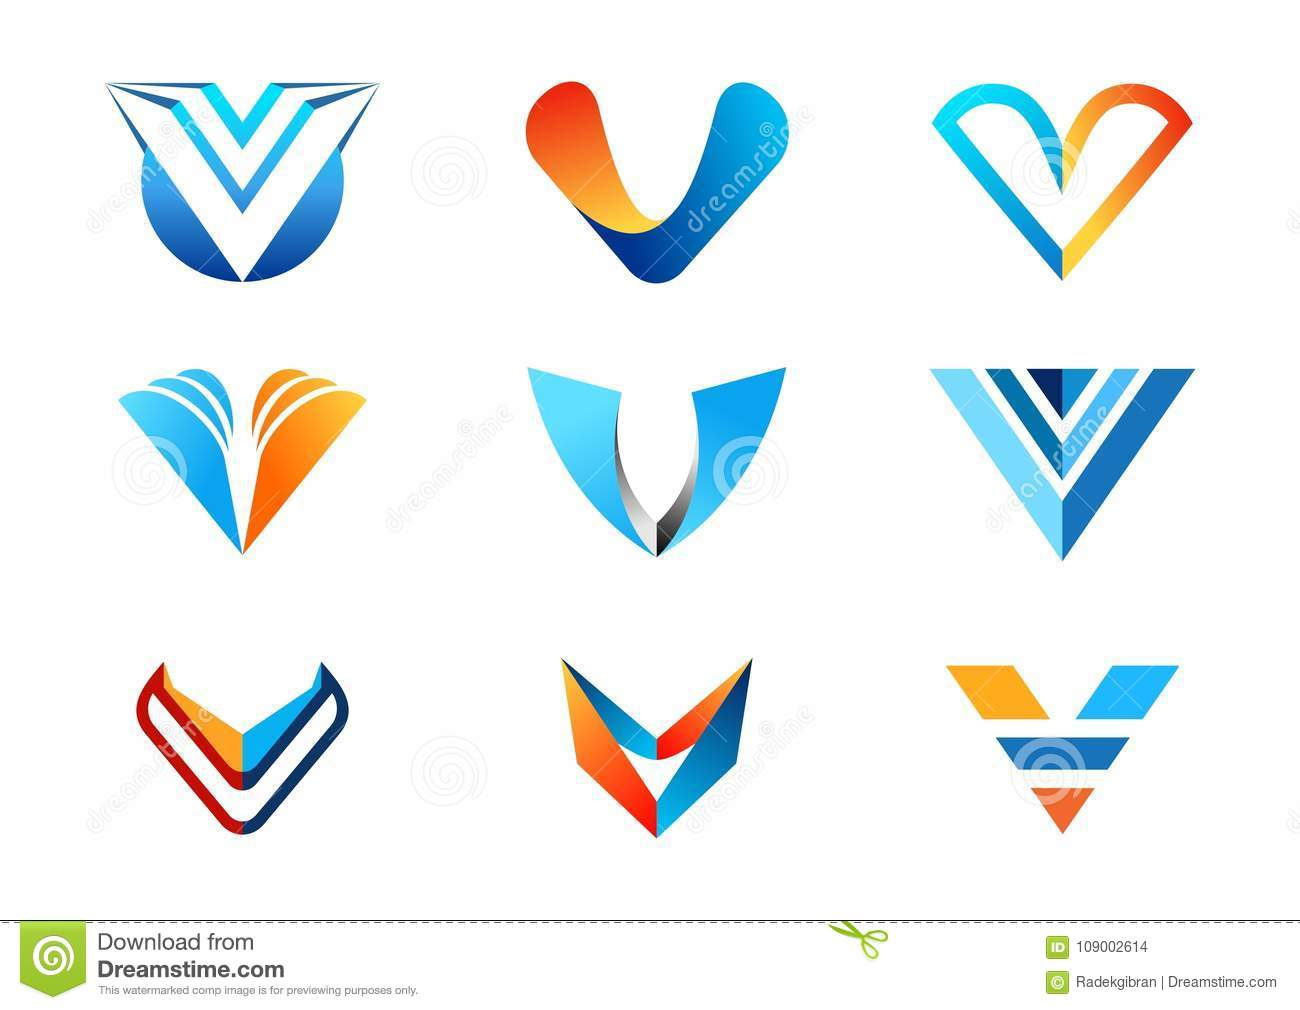 Letter V Logo Abstract Elements Concept Company Logos Collection